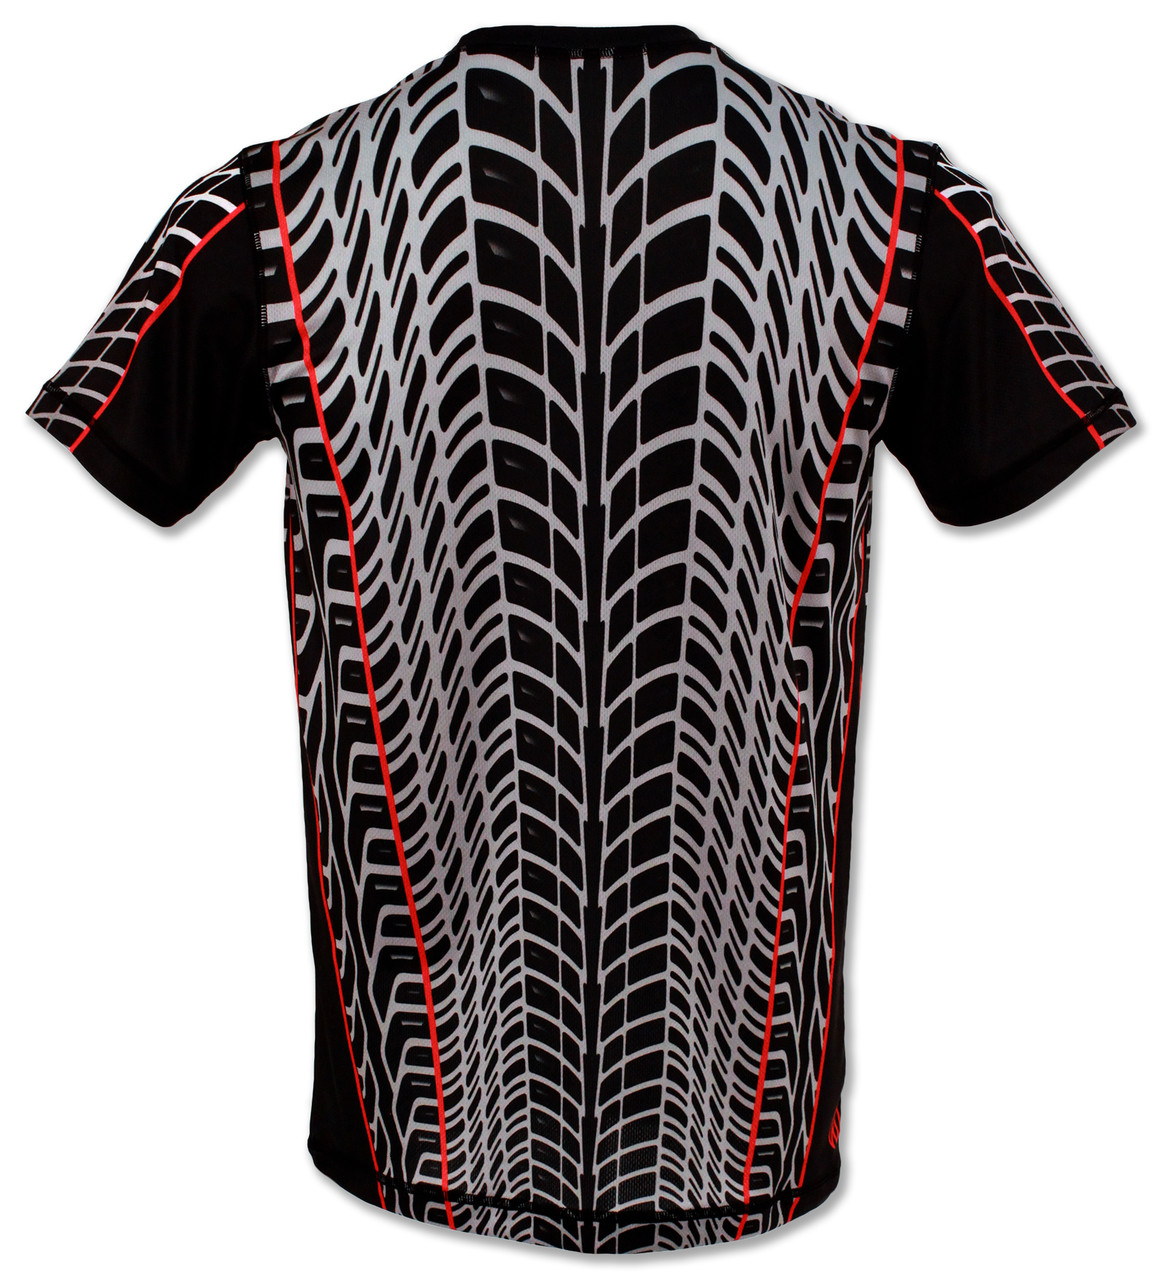 INKnBURN Men's Traction Tech Shirt Front